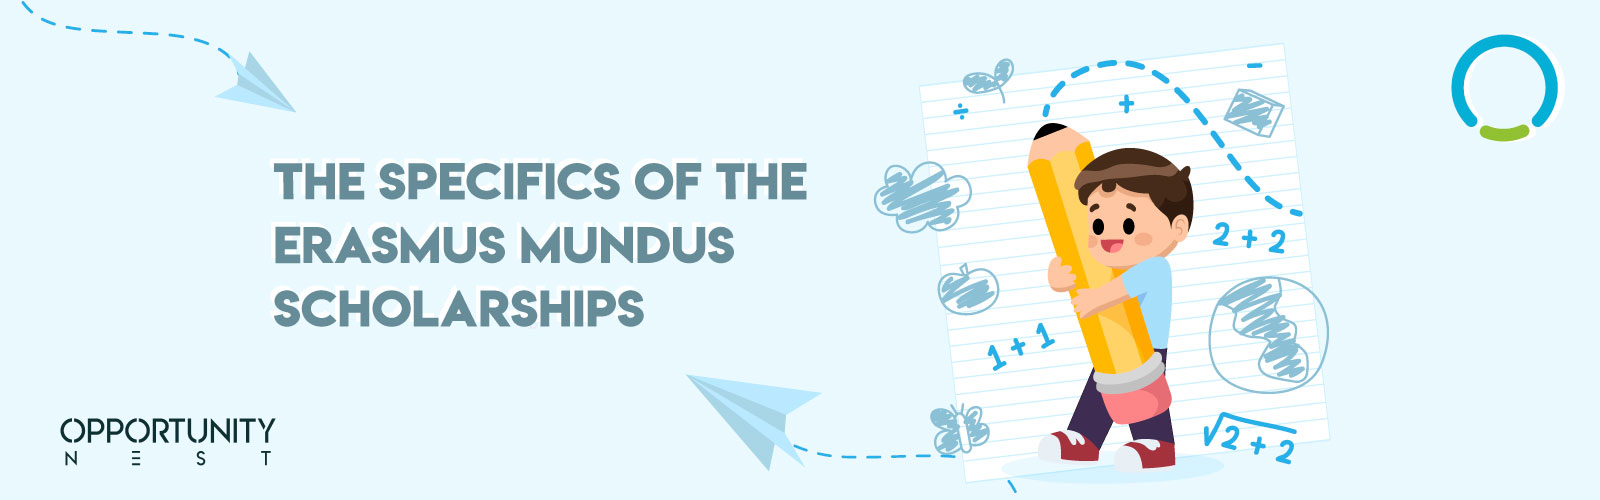 Photo of The Specifics of the Erasmus Mundus Scholarships